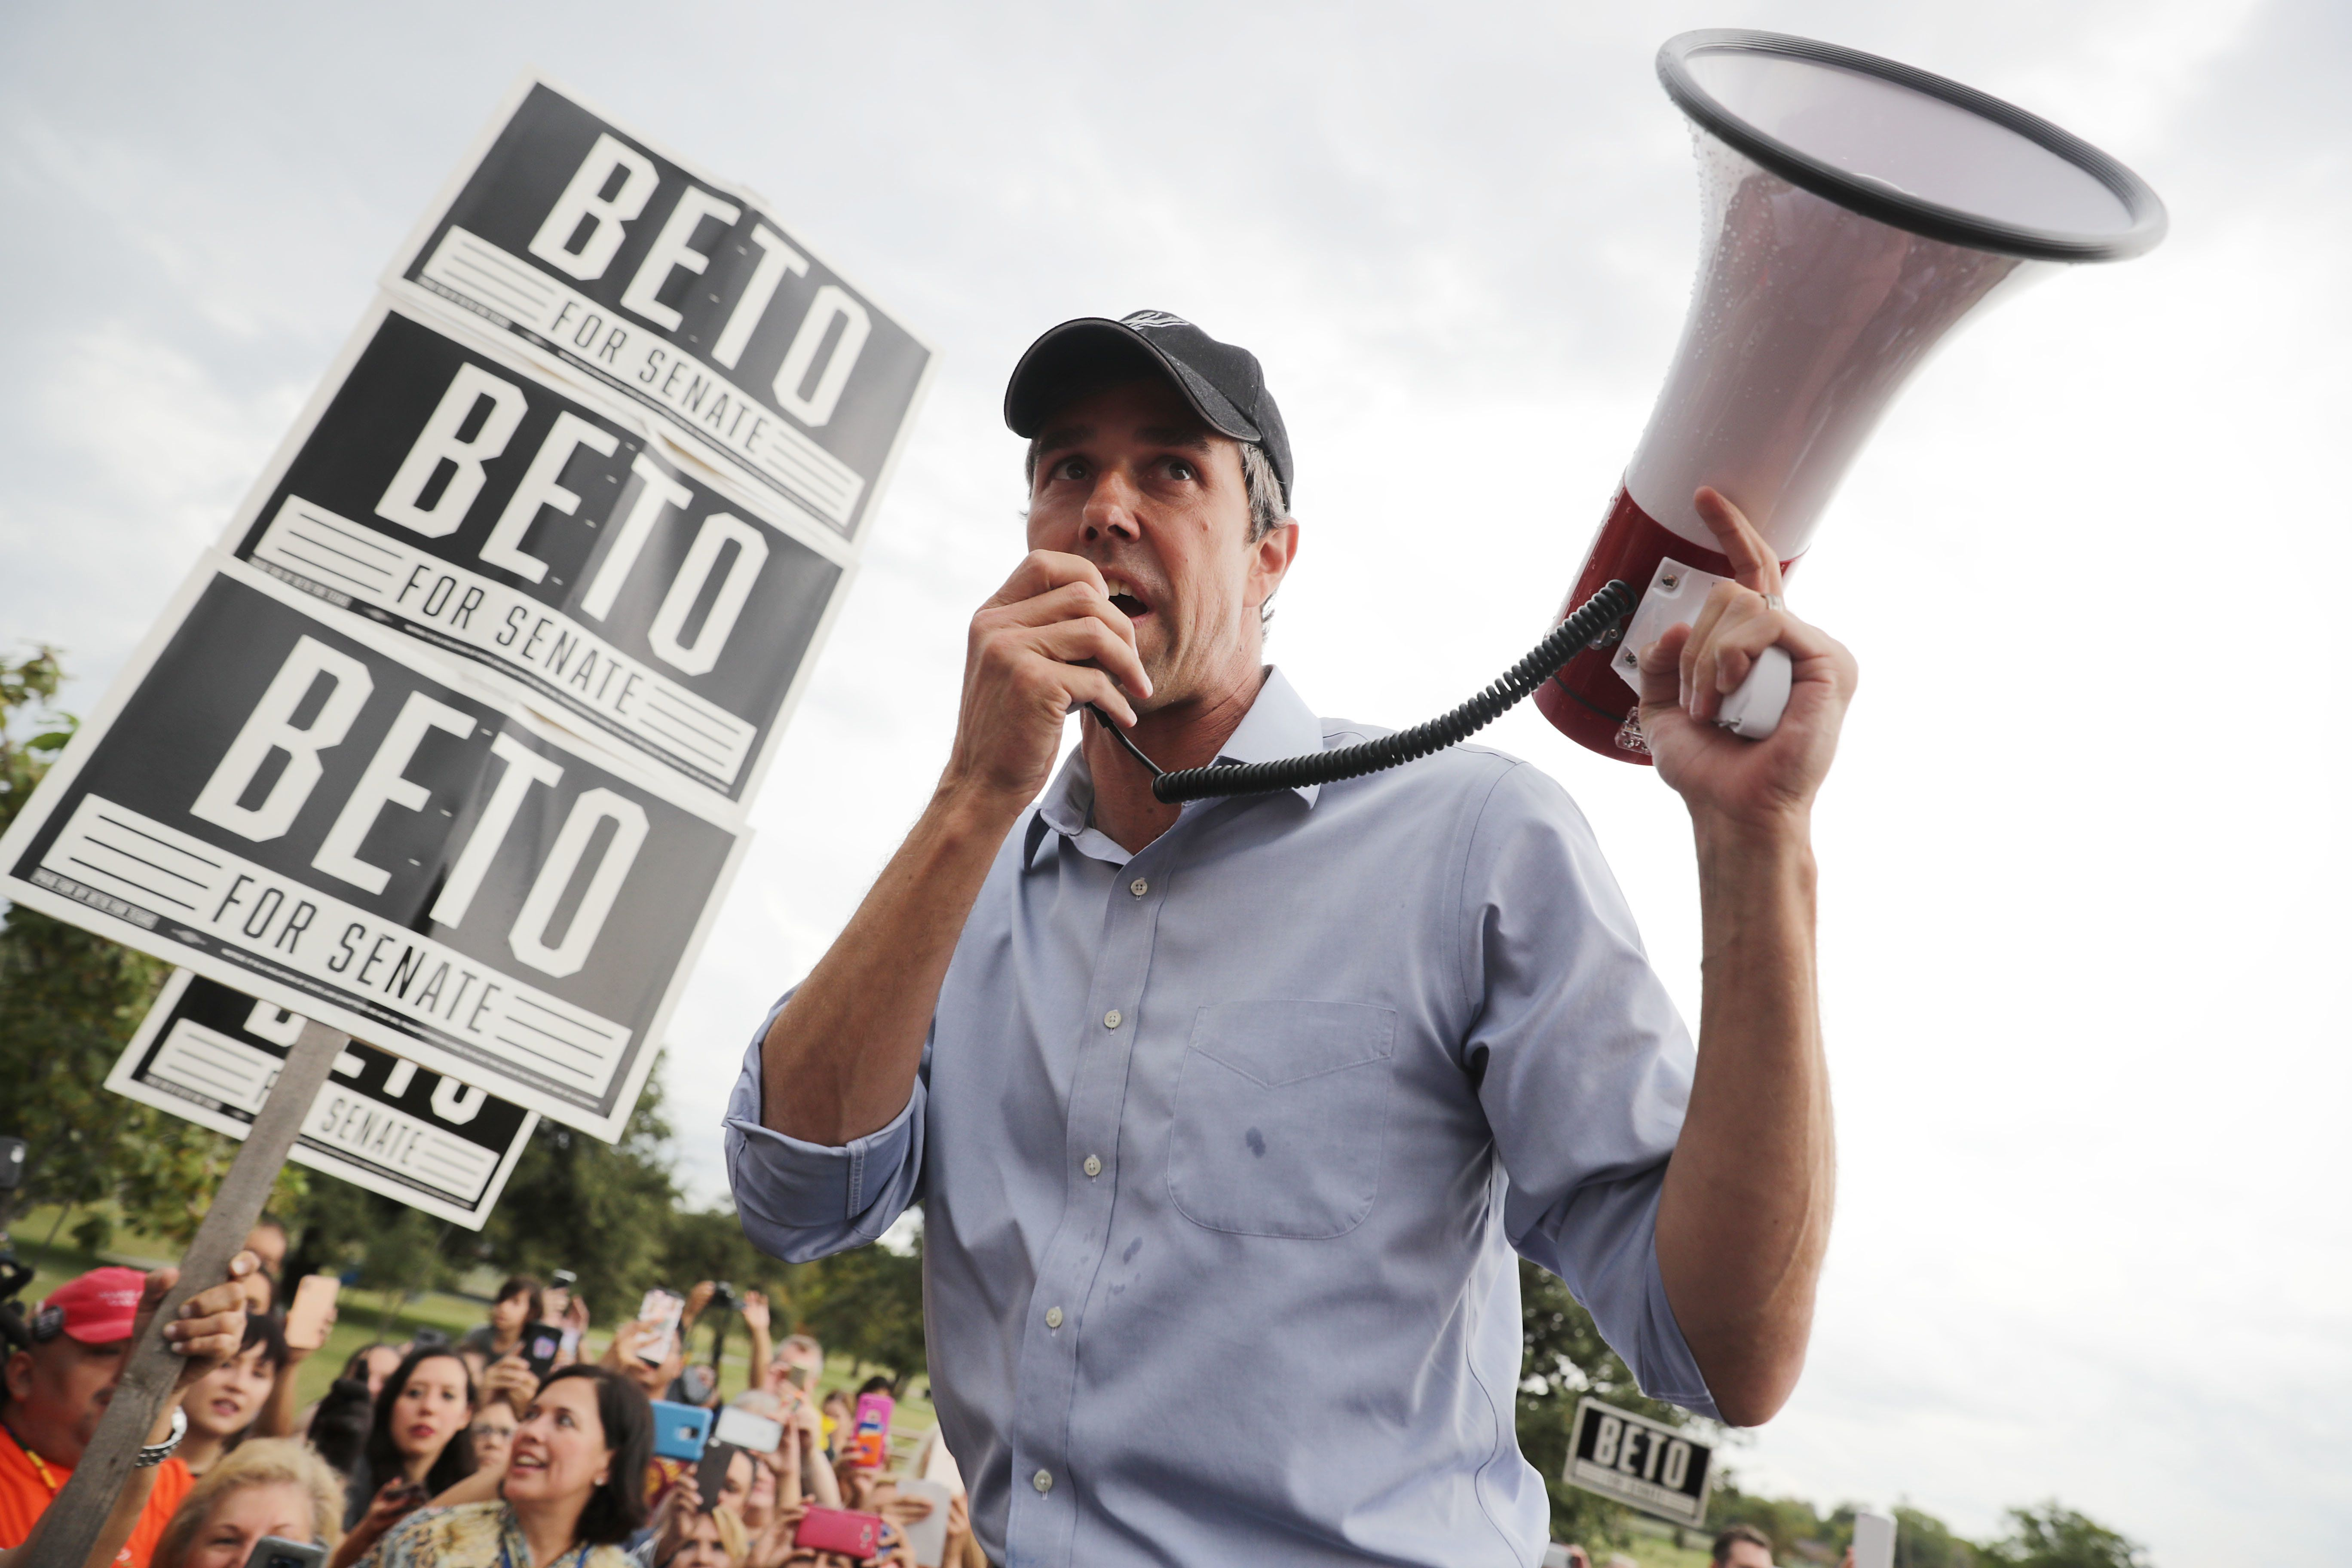 SAN ANTONIO, TEXAS - OCTOBER 31: U.S. Senate candidate Rep. Beto O'Rourke (D-TX) talks to supporters with a megaphone as he campaigns at Gilbert Garza Park October 31, 2018 in San Antonio, Texas. With less than a week before Election Day, O'Rourke is driving across the state in his race against incumbent Sen. Ted Cruz (R-TX). (Photo by Chip Somodevilla/Getty Images)